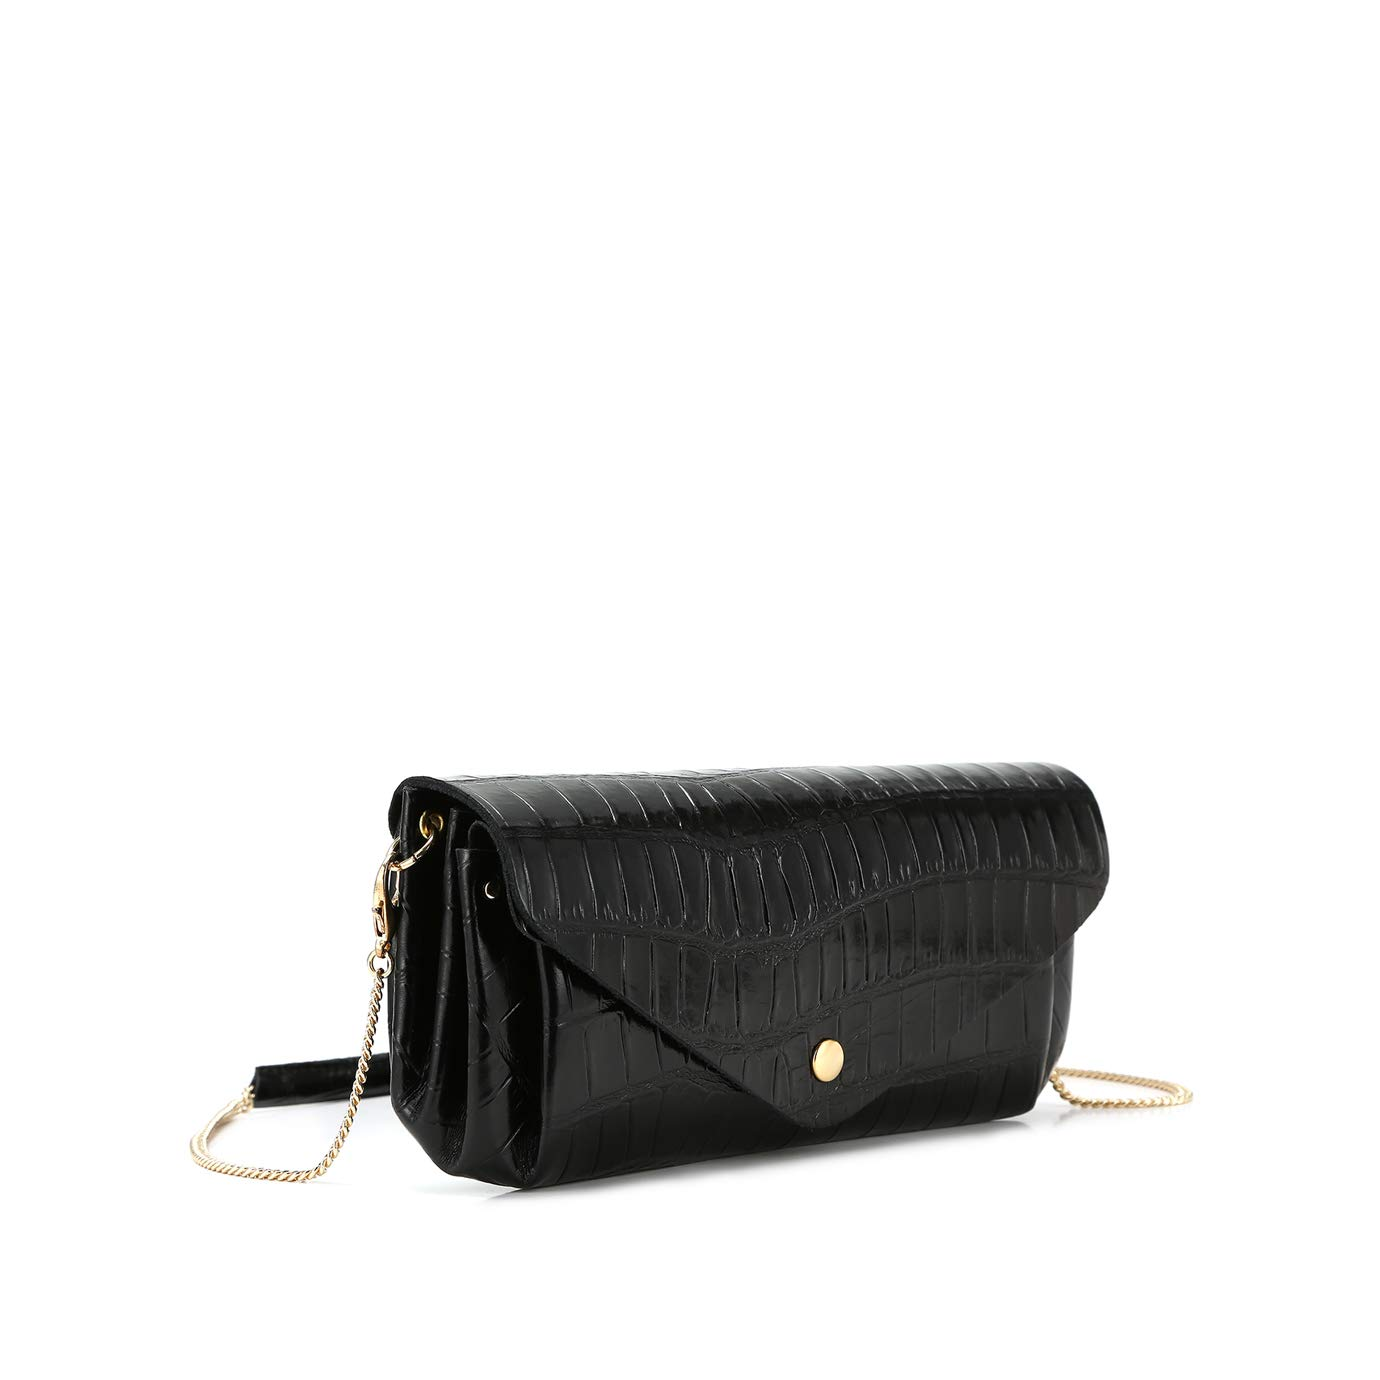 RABEANCO Chain Wallet Pouch #21864